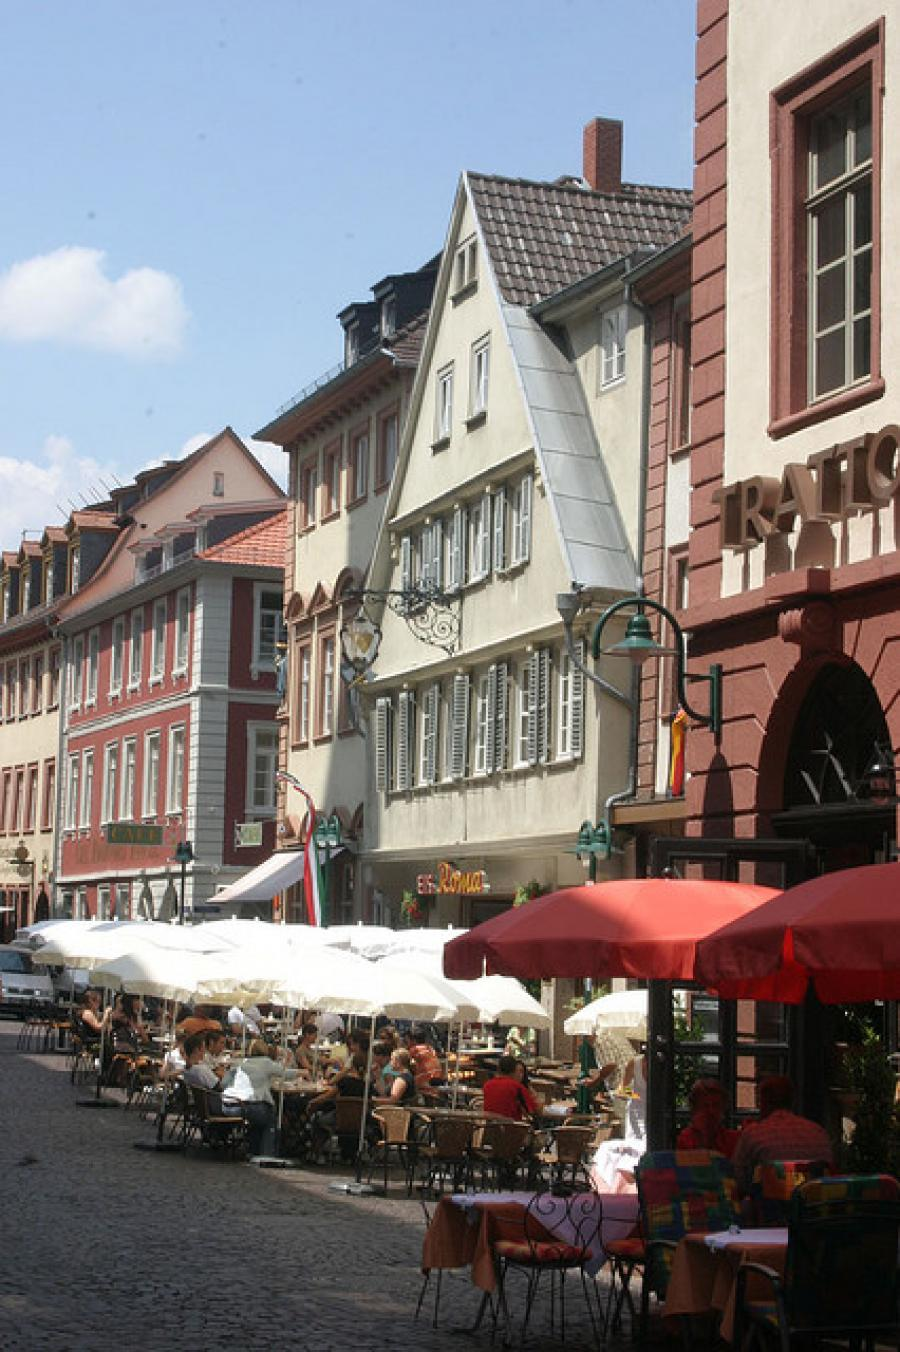 The Mole Diaries: Heidelberg